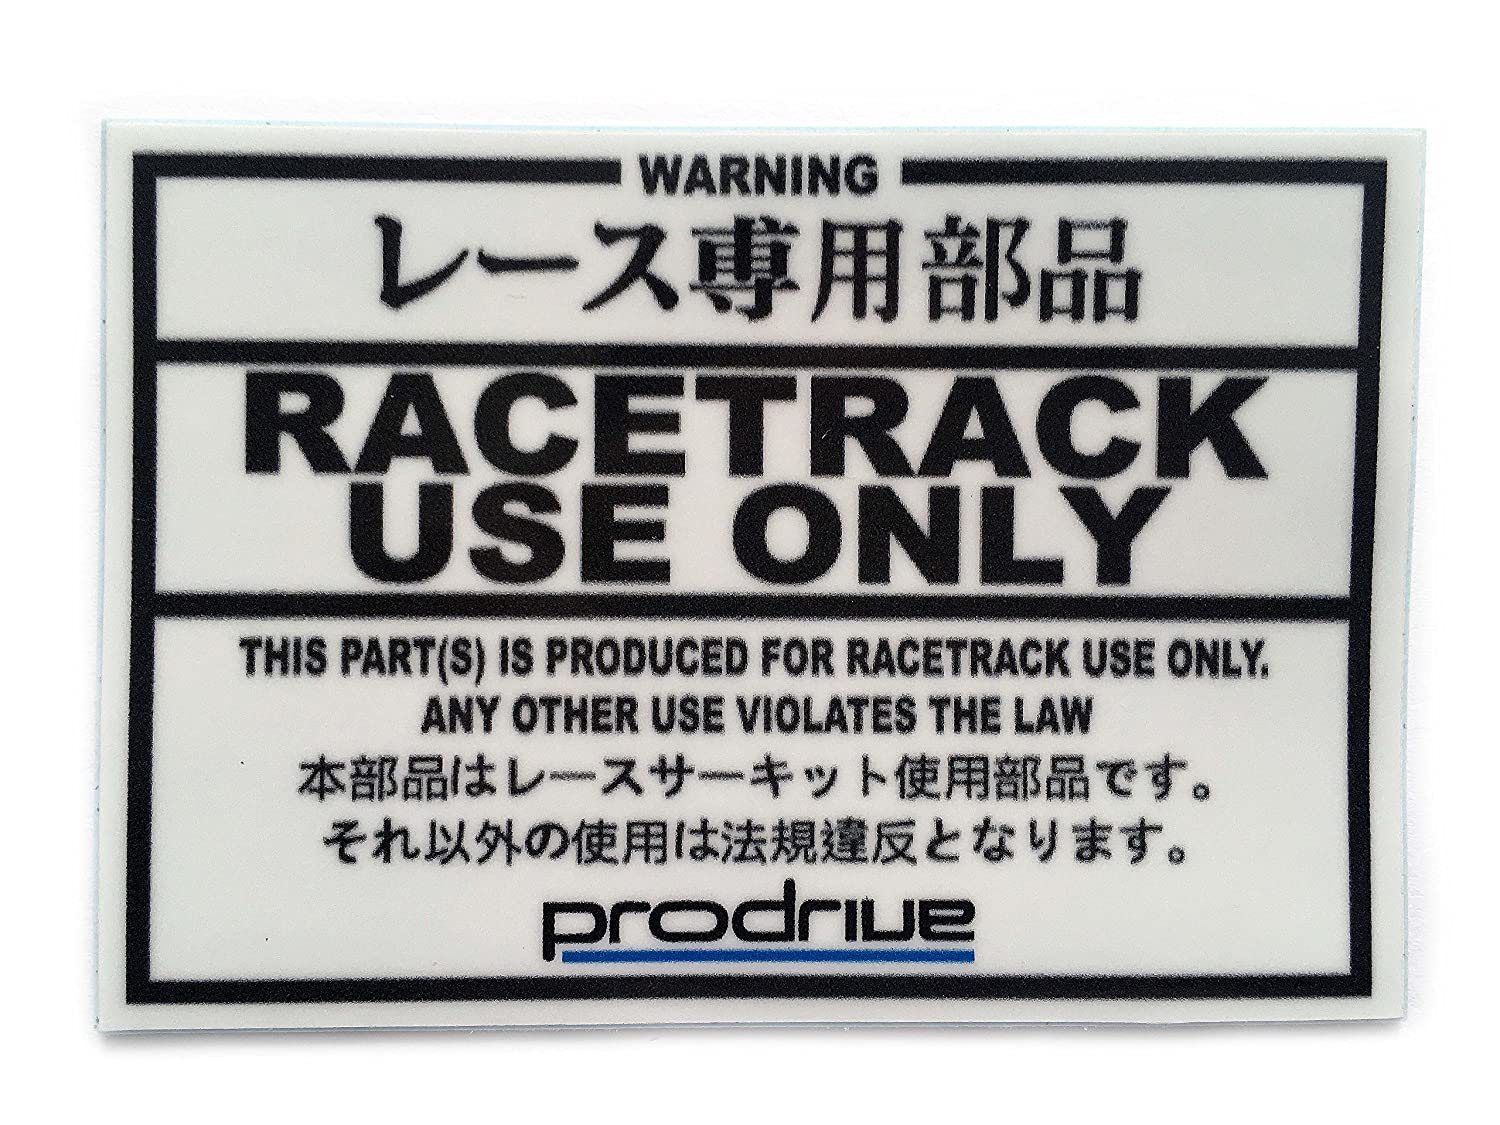 Toyota Subaru Nissan Mitsubishi Mazda Prodrive Lexus Race Track Use Only Suzuki Automotive Car Decal Orafol Vinyl Sticker JDM Japanese Domestic Market for Honda